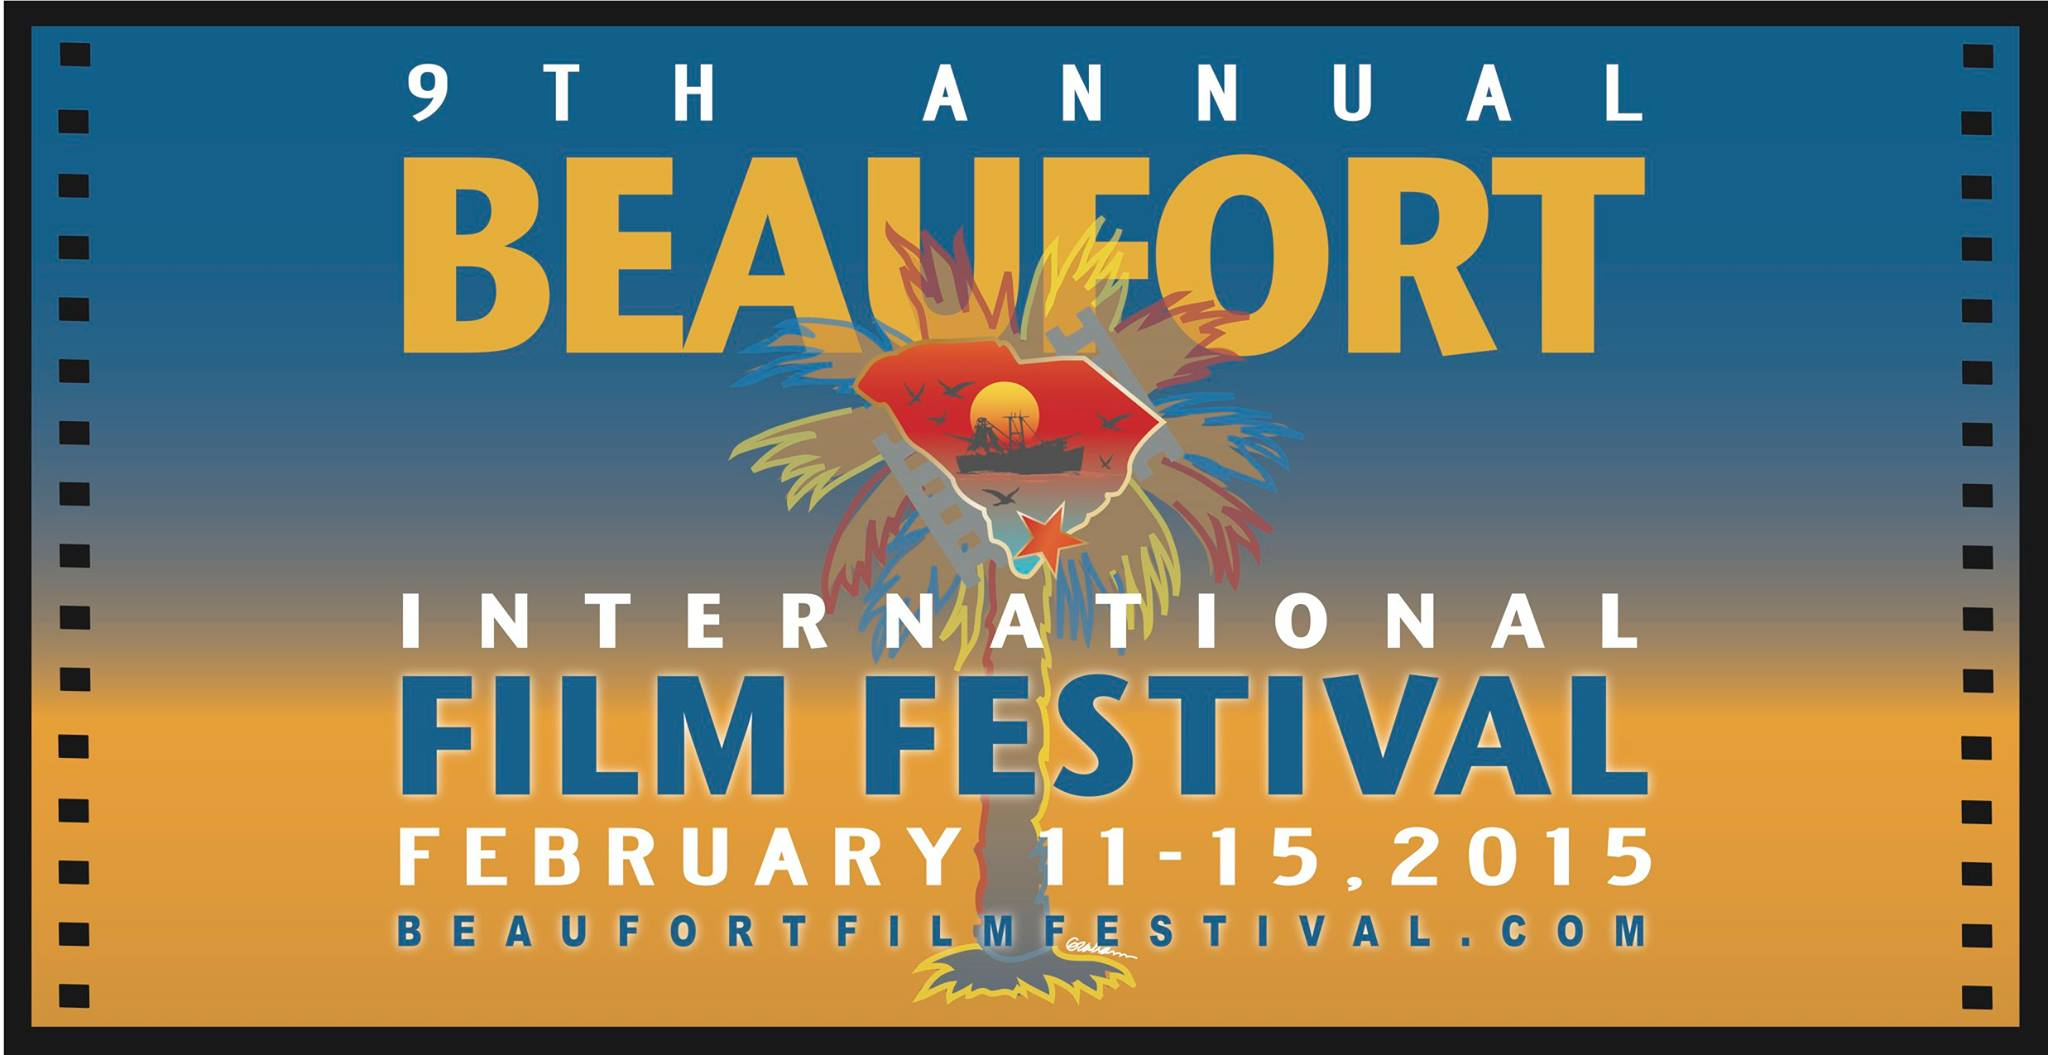 Beaufort International Film Festival 2015